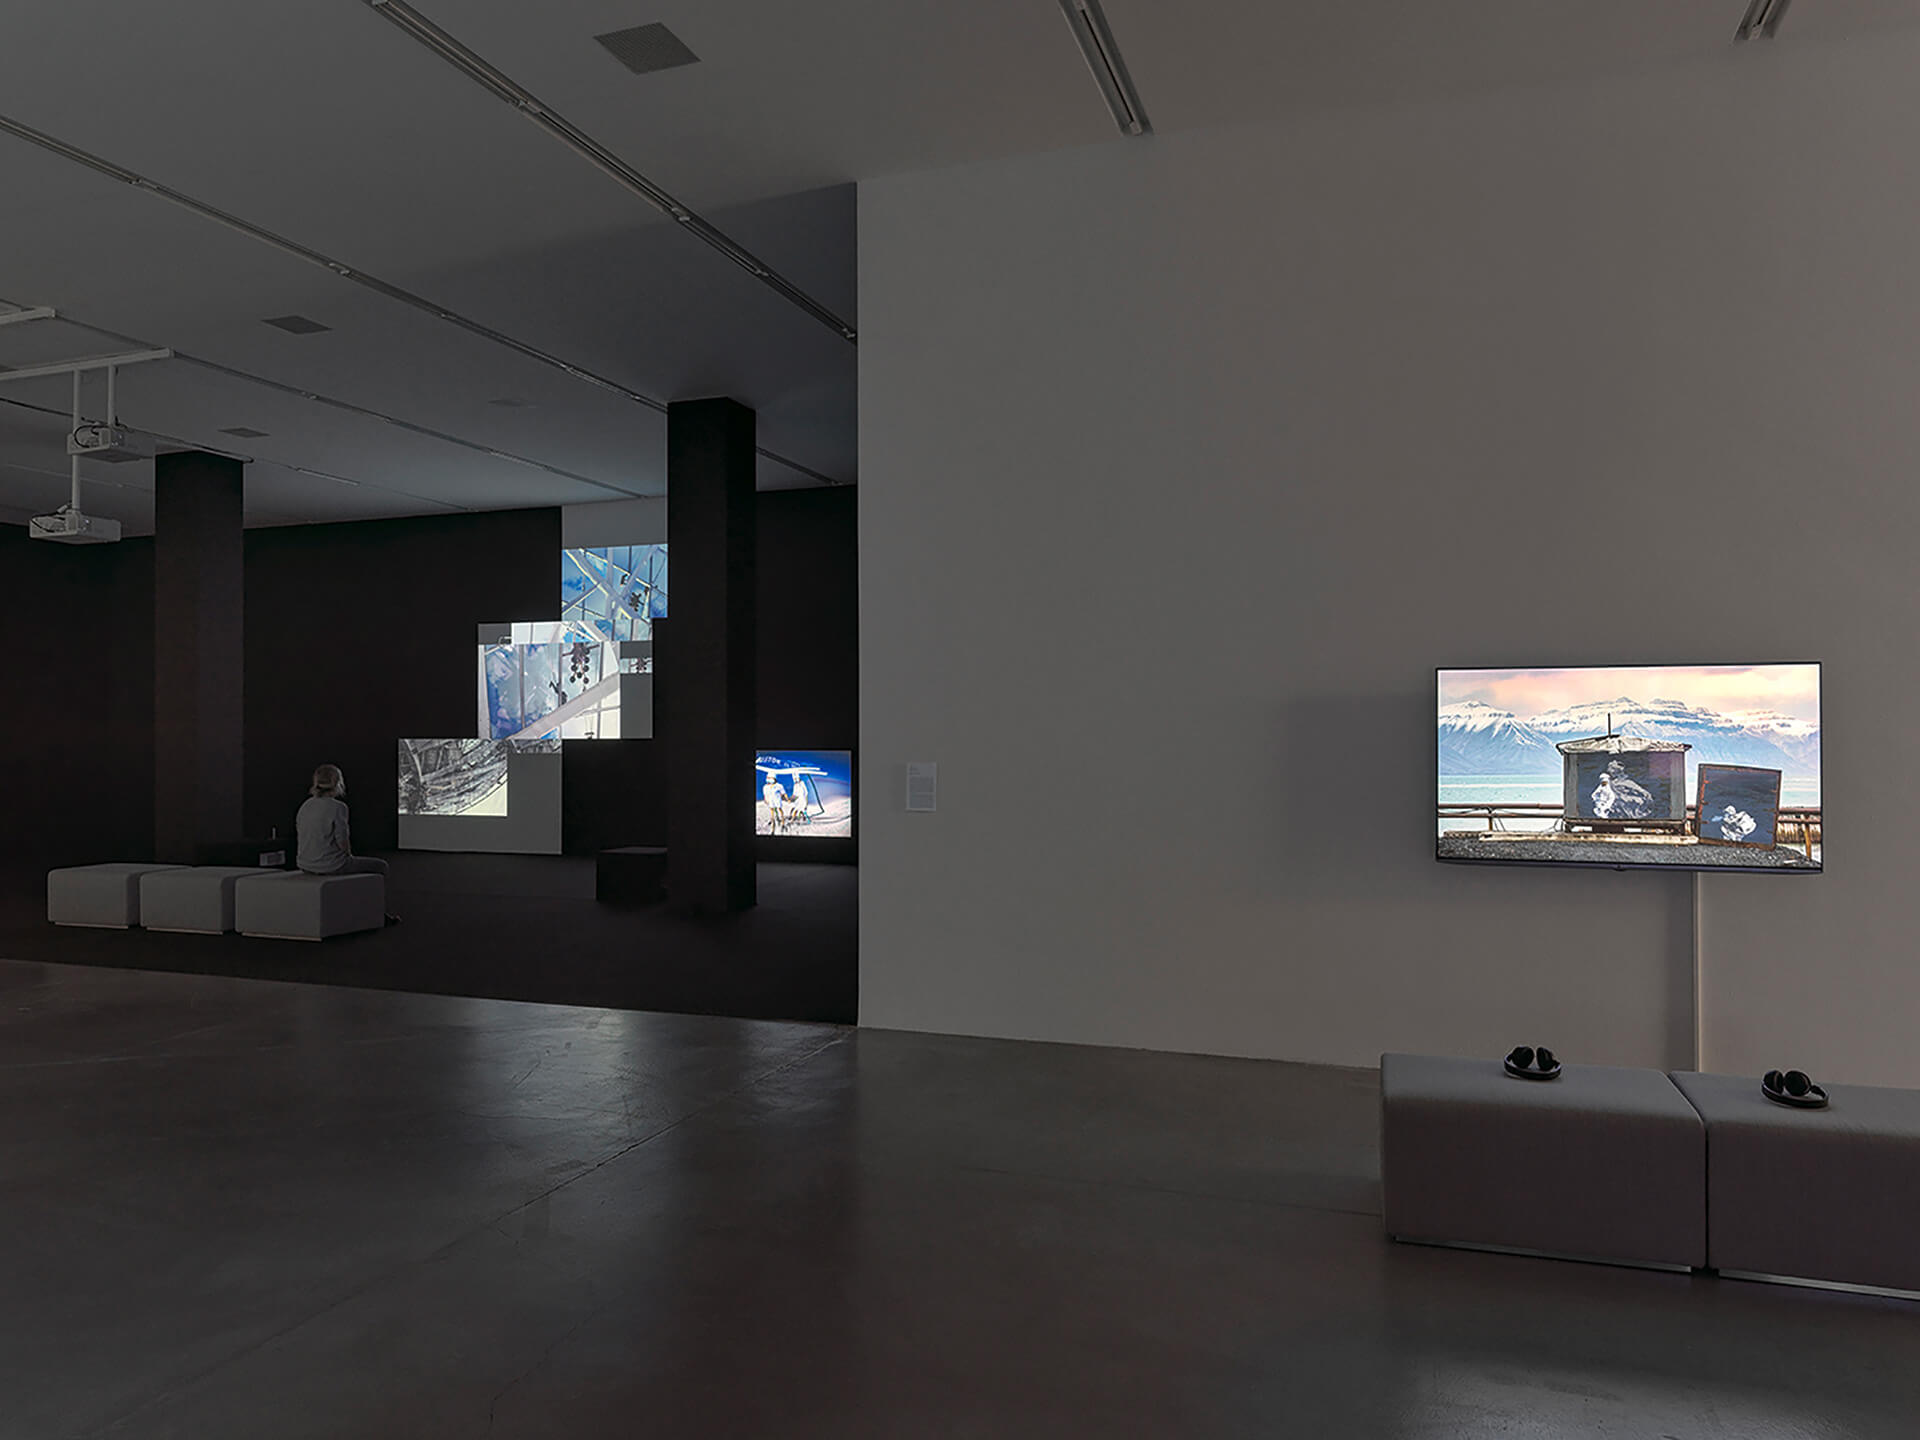 Almagul Menlibayeva's Departure.Astana (2016-2020) and Himali Singh Soin's we are opposite like that (2019) at Migros Museum für Gegenwartskunst | Potential Worlds 1: Planetary Memories | Almagul Menlibayeva, Himali Singh Soin| STIRworld